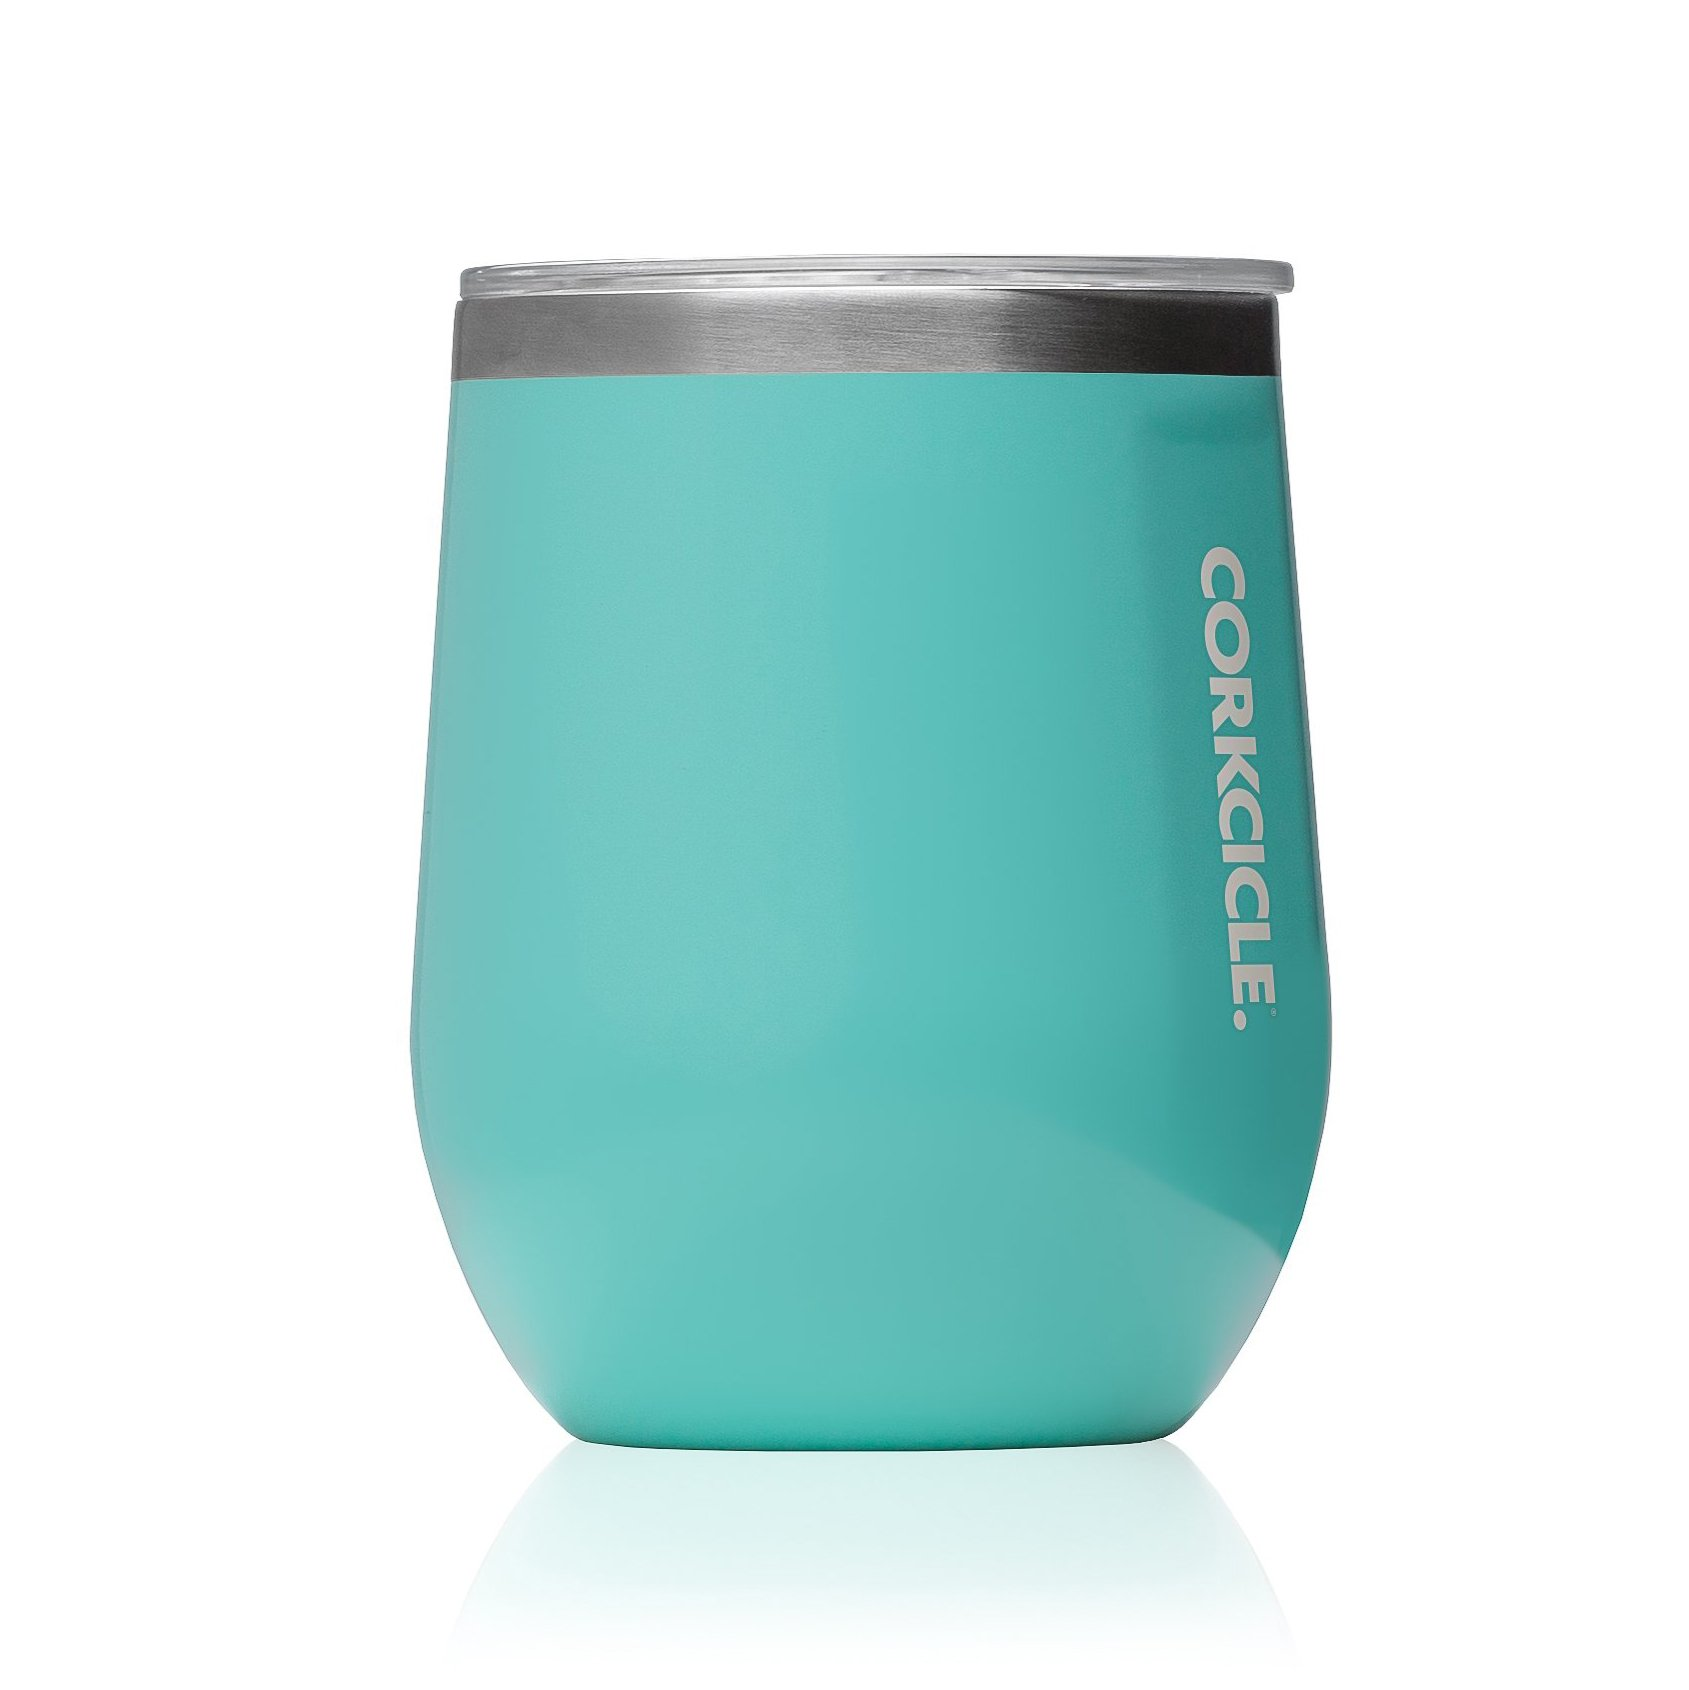 Corkcicle 12 oz Triple-Insulated Stemless Glass (Perfect for Wine) - Gloss Turquoise